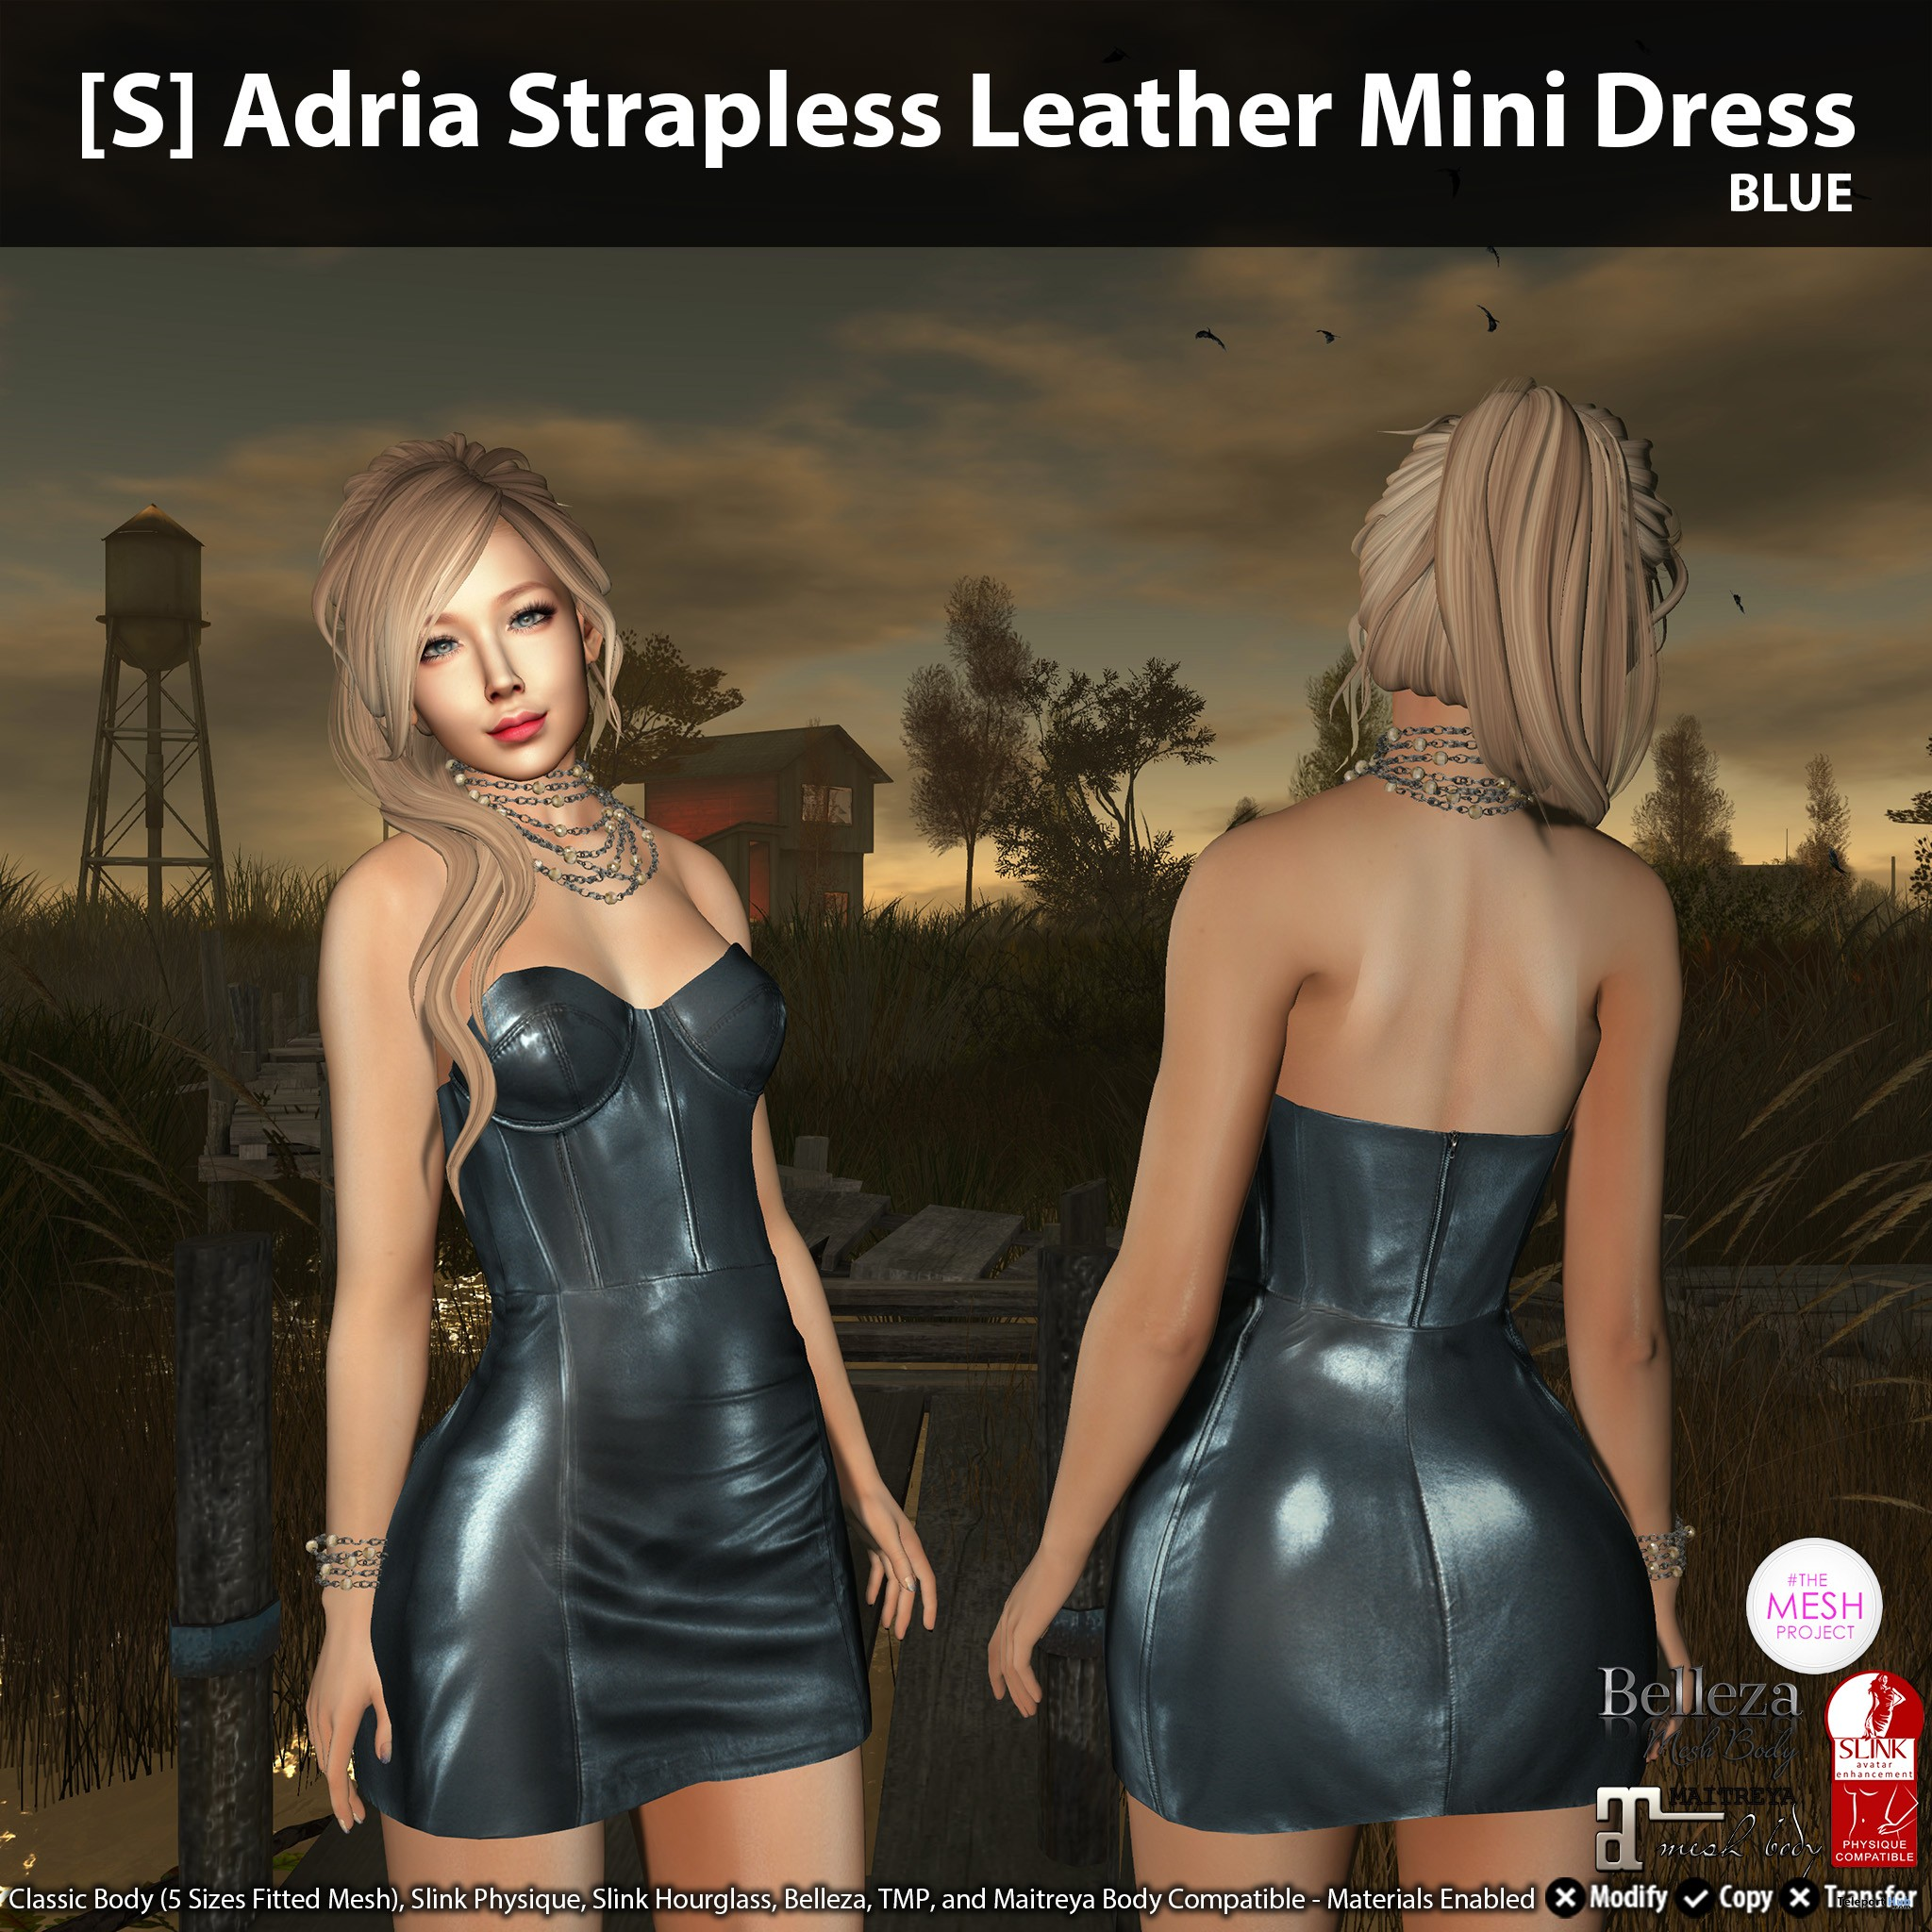 New Release: [S] Adria Strapless Leather Mini Dress by [satus Inc] - Teleport Hub - teleporthub.com